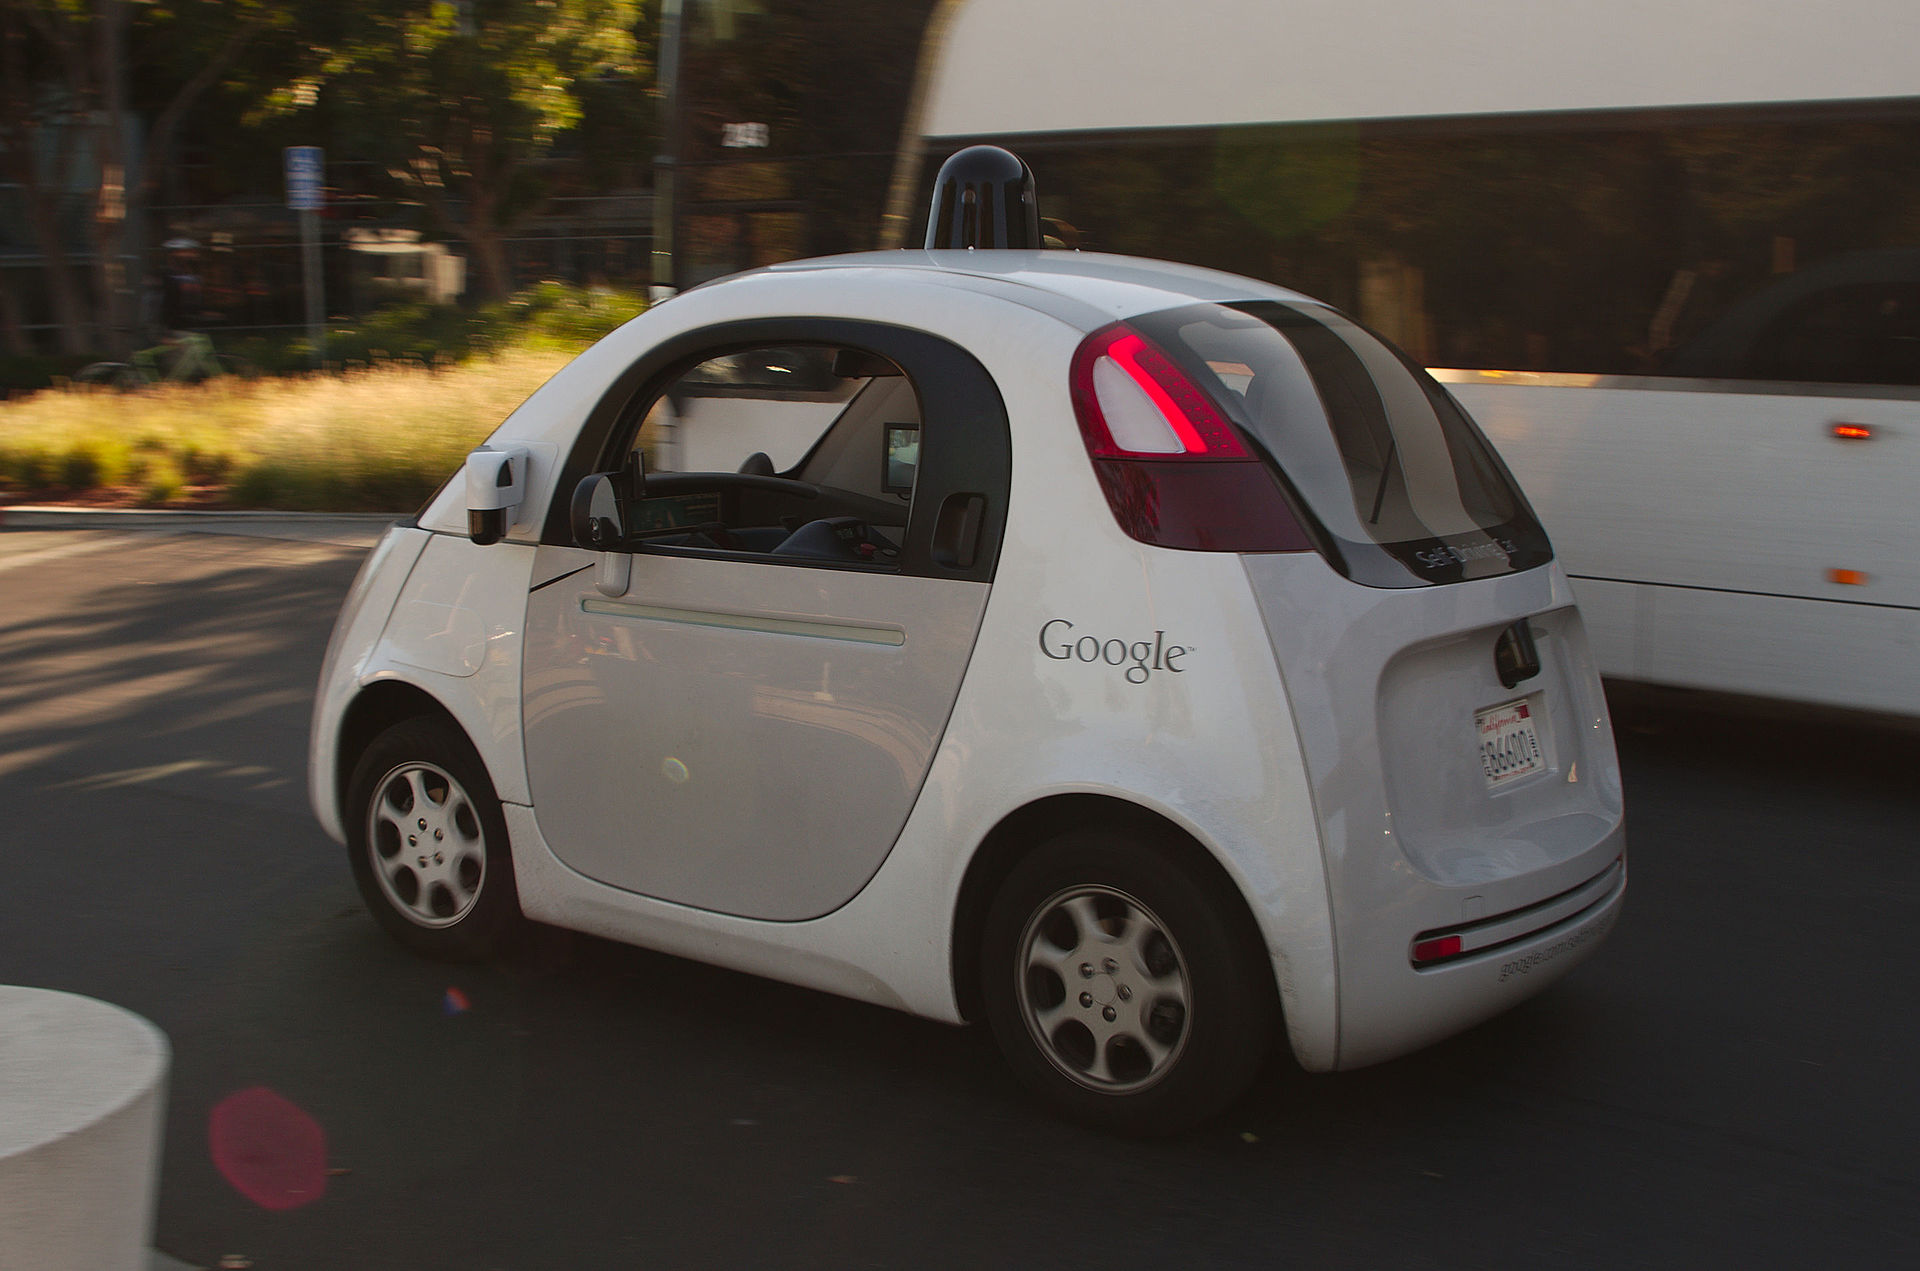 Google_self_driving_car_at_the_Googleplex.jpg